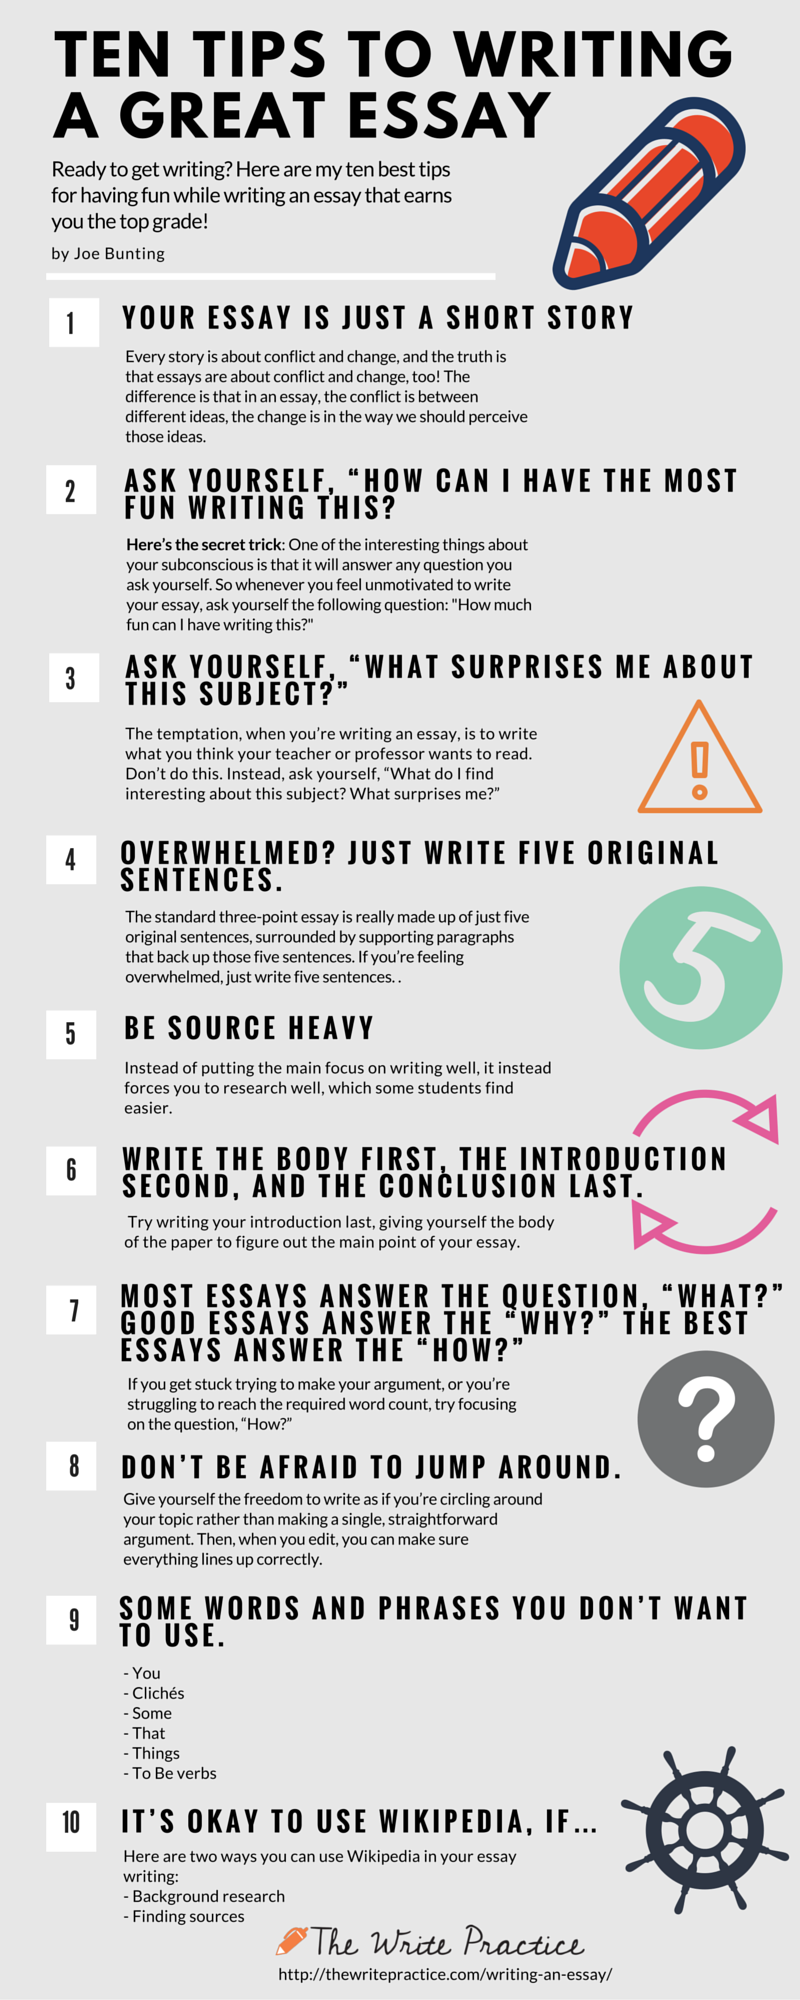 Tips to Write an Essay and Actually Enjoy It With that in mind, here's an infographic with ten tips to write an essay without hating every moment of the process.With that in mind, here's an infographic with ten tips to write an essay without hating every moment of the process.